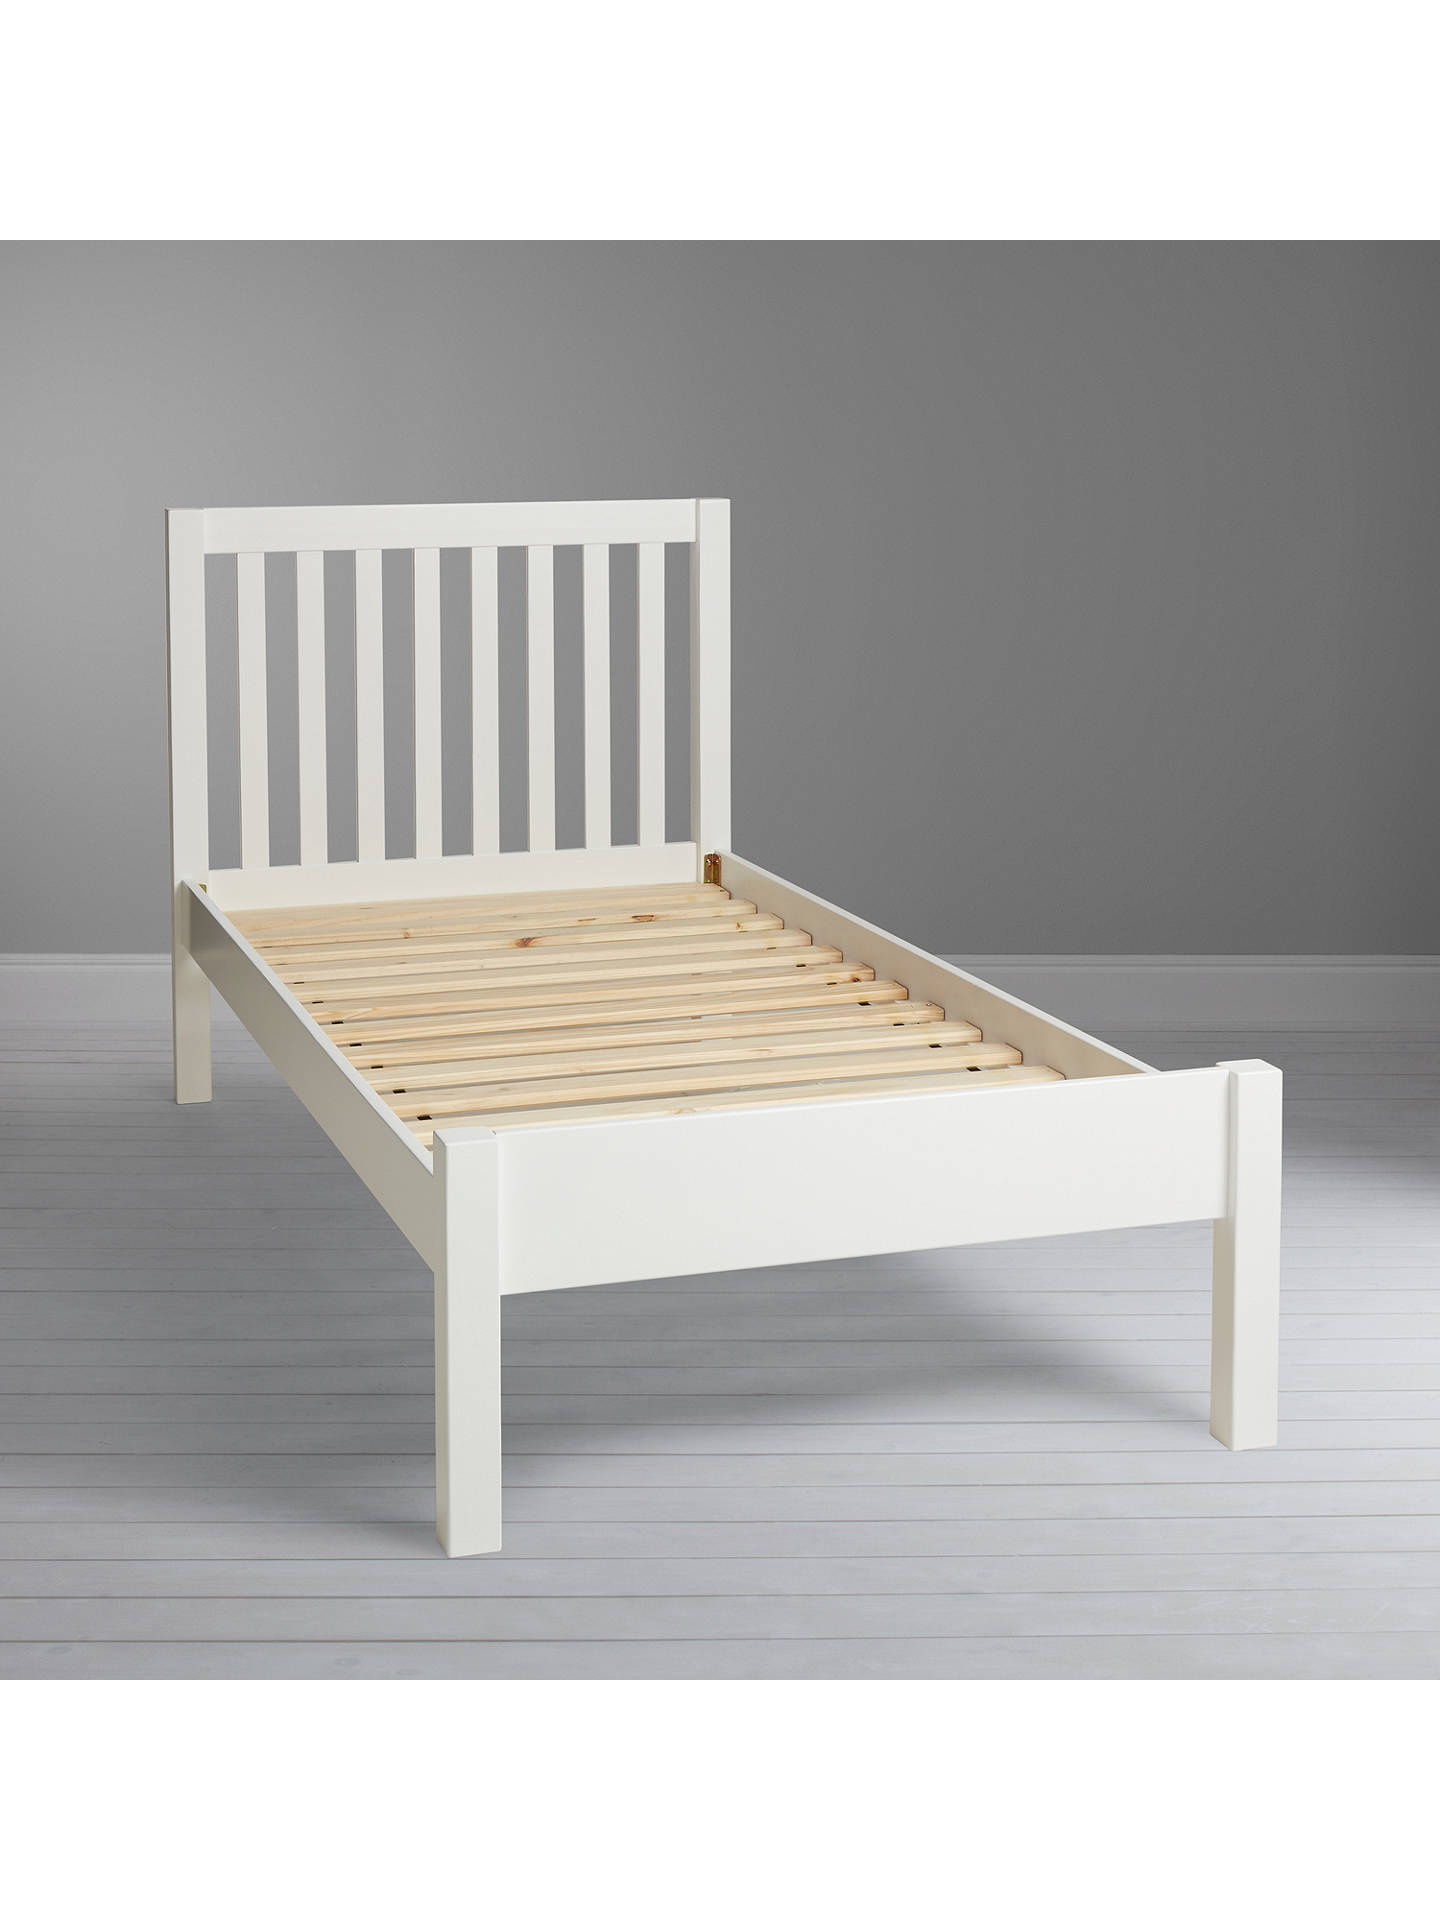 BuyJohn Lewis & Partners Wilton Child Compliant Bed Frame, Single, White Online at johnlewis.com